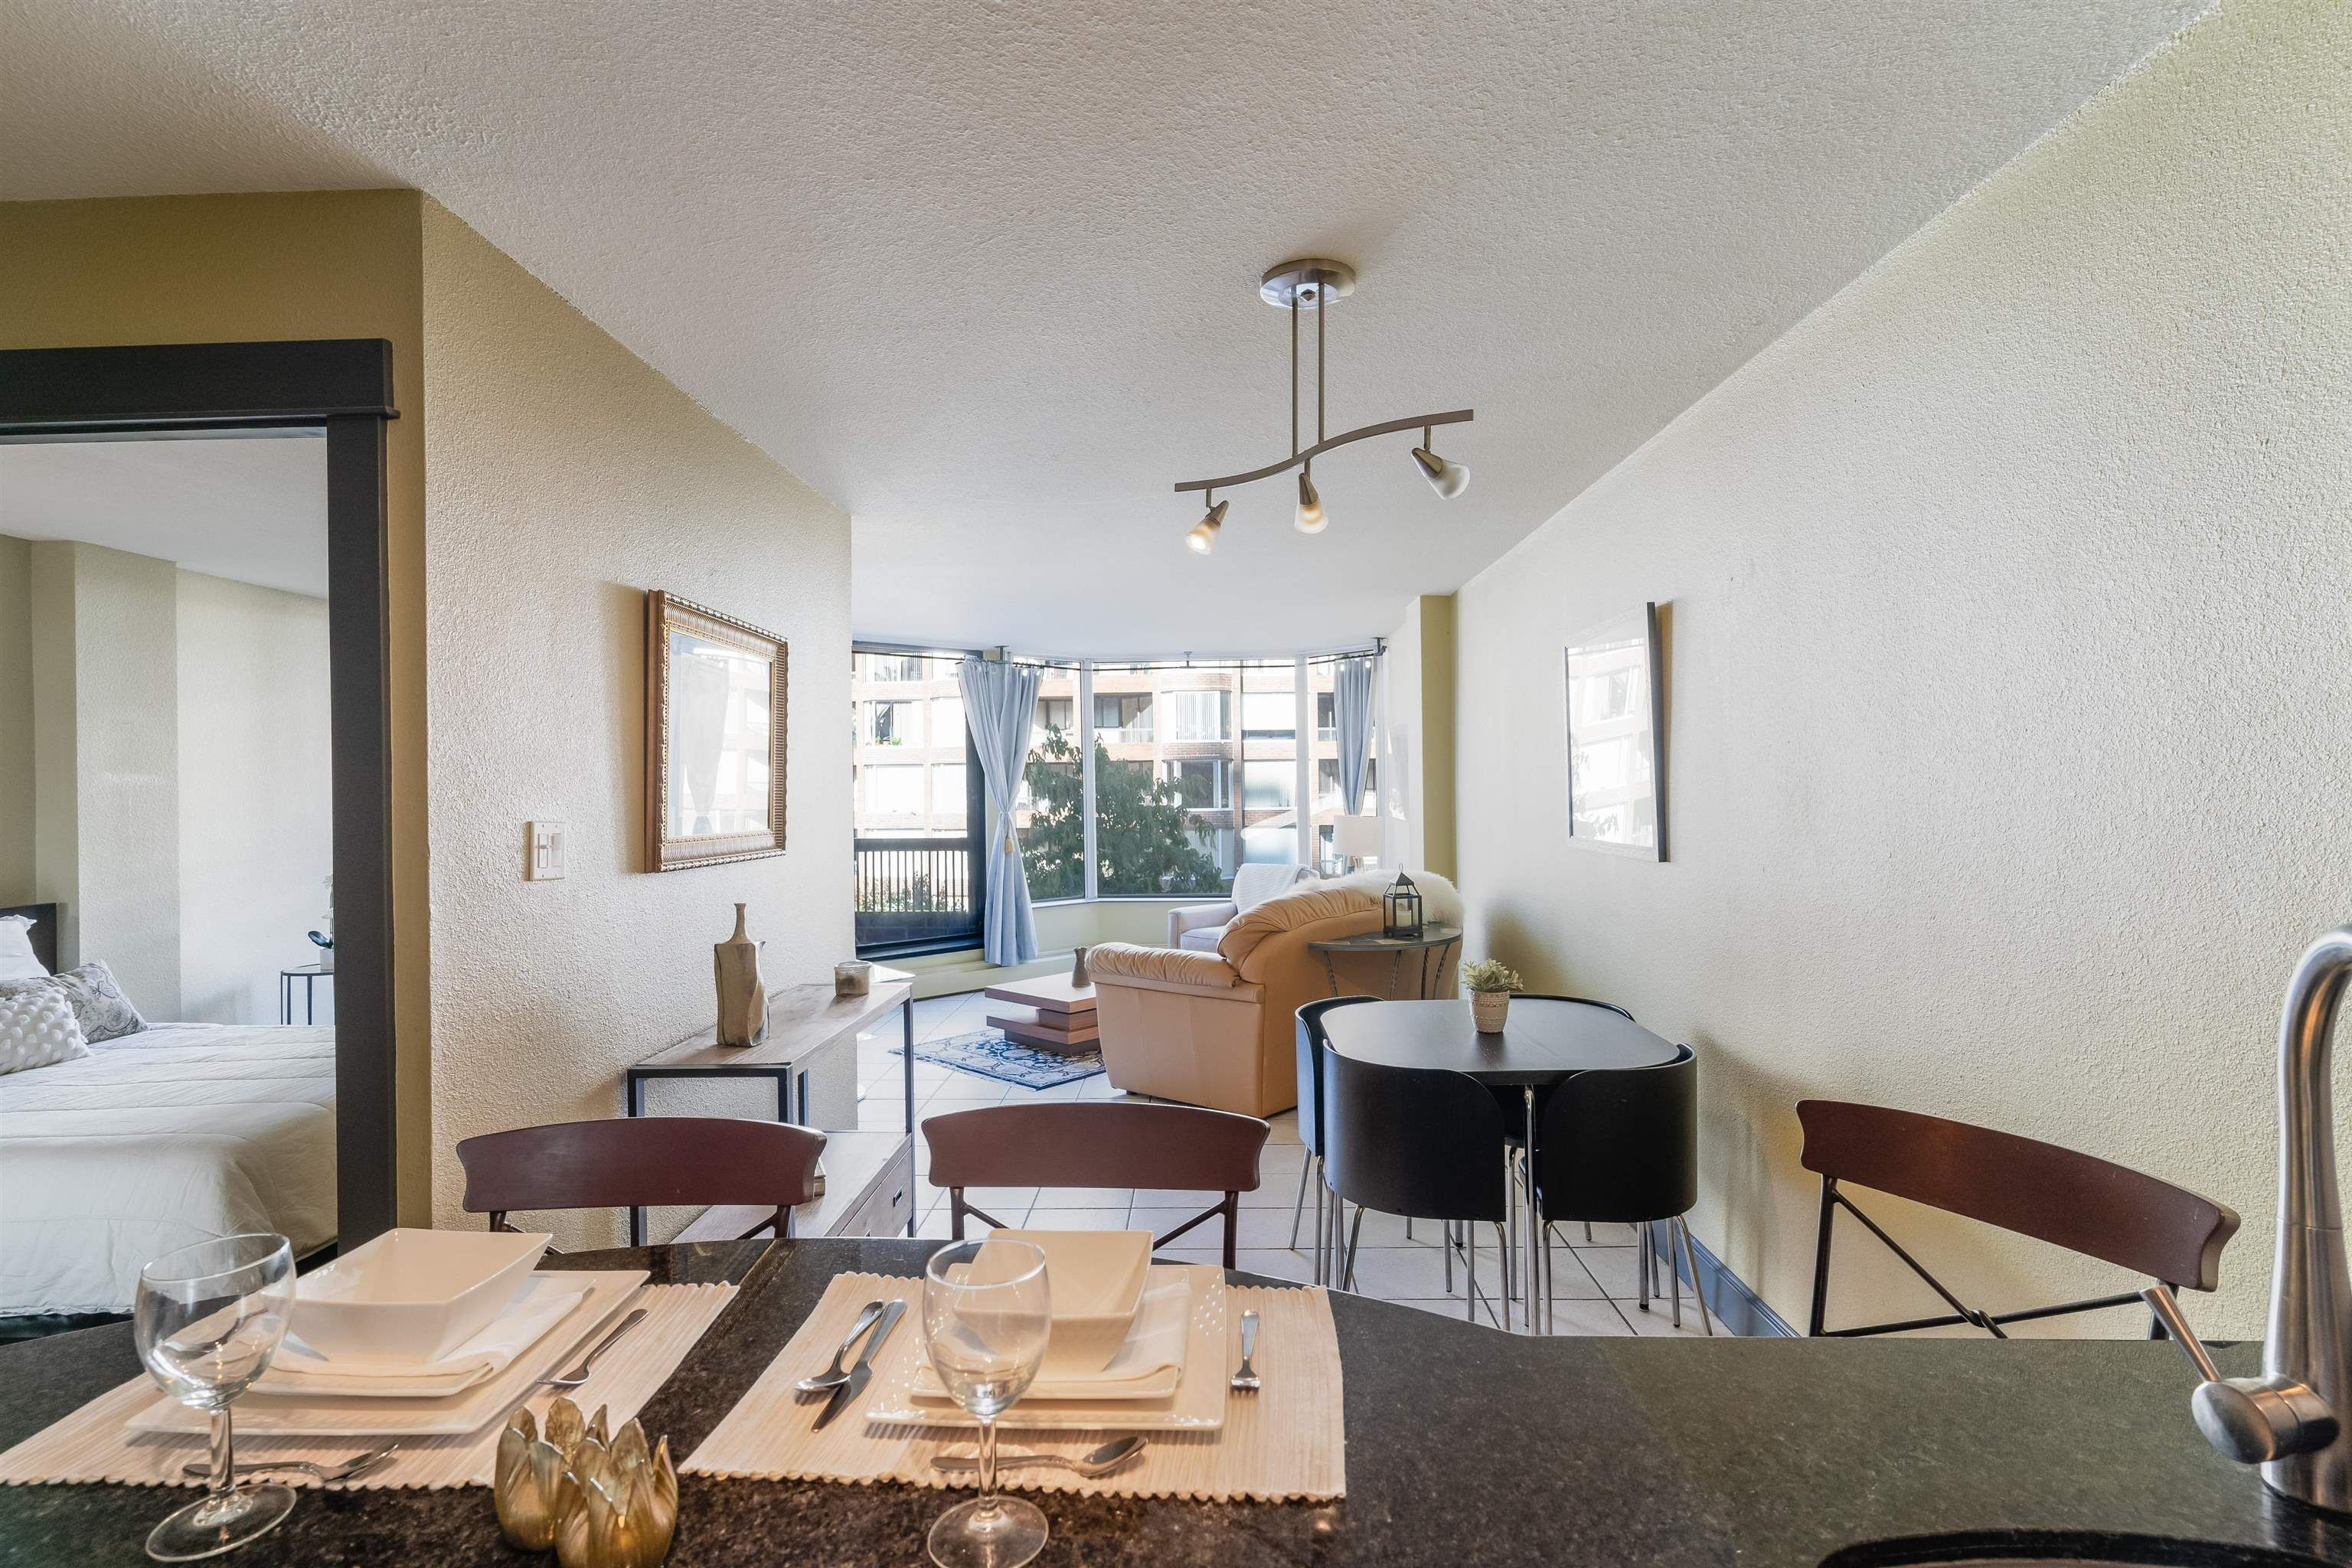 """Main Photo: 620 1333 HORNBY Street in Vancouver: Downtown VW Condo for sale in """"Anchor Point III"""" (Vancouver West)  : MLS®# R2620469"""